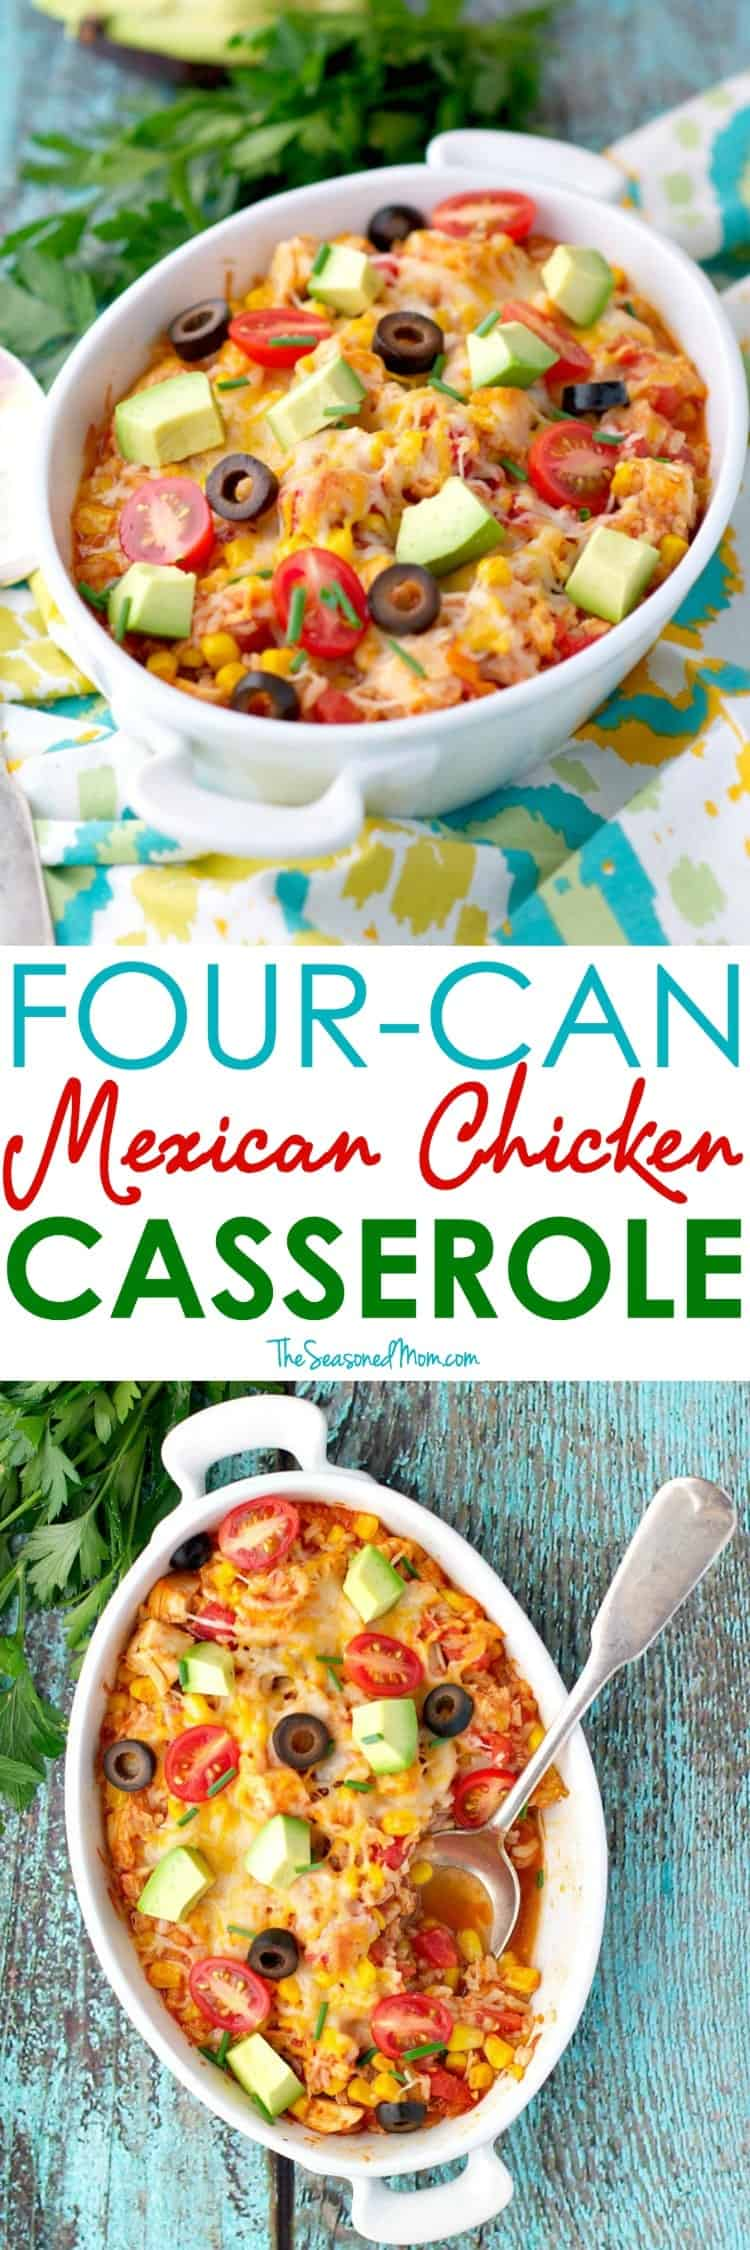 This 4 Can Mexican Chicken Casserole Comes Together In About 5 Minutes And Be Prepared